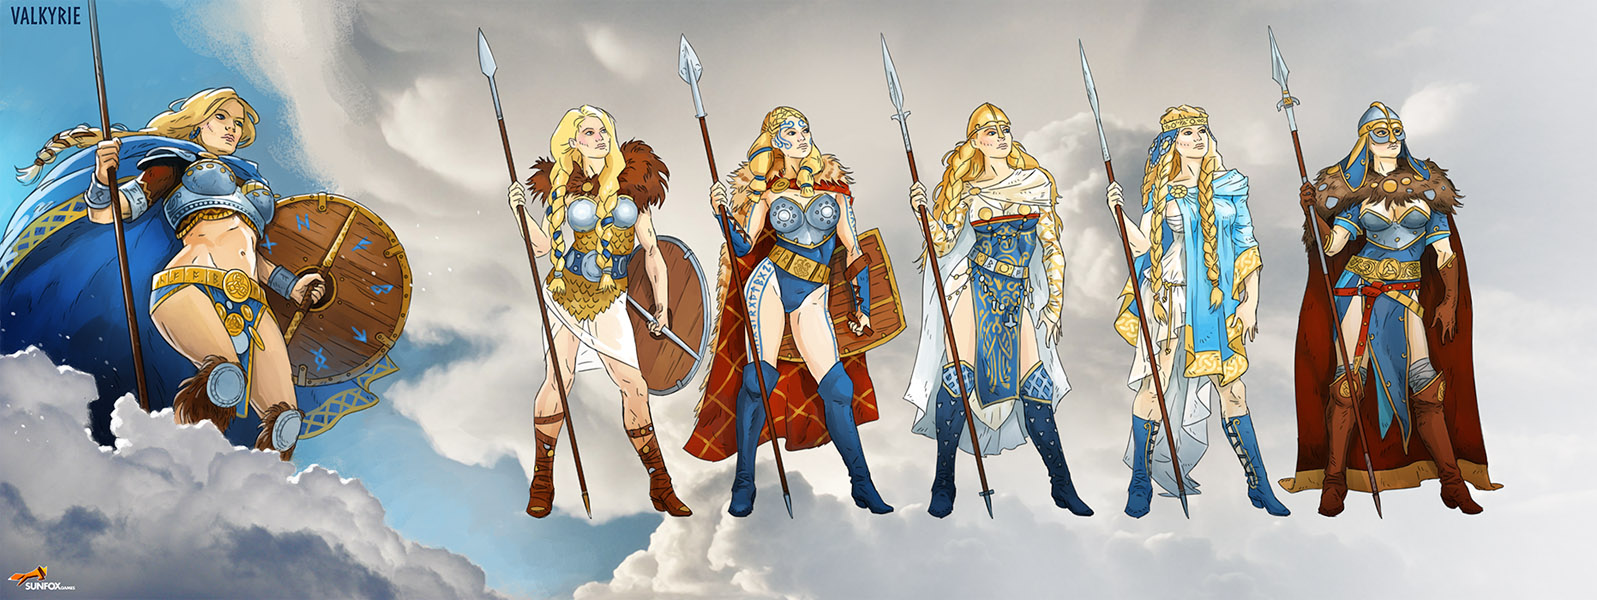 Character design for Call of the Valkyries video slot game